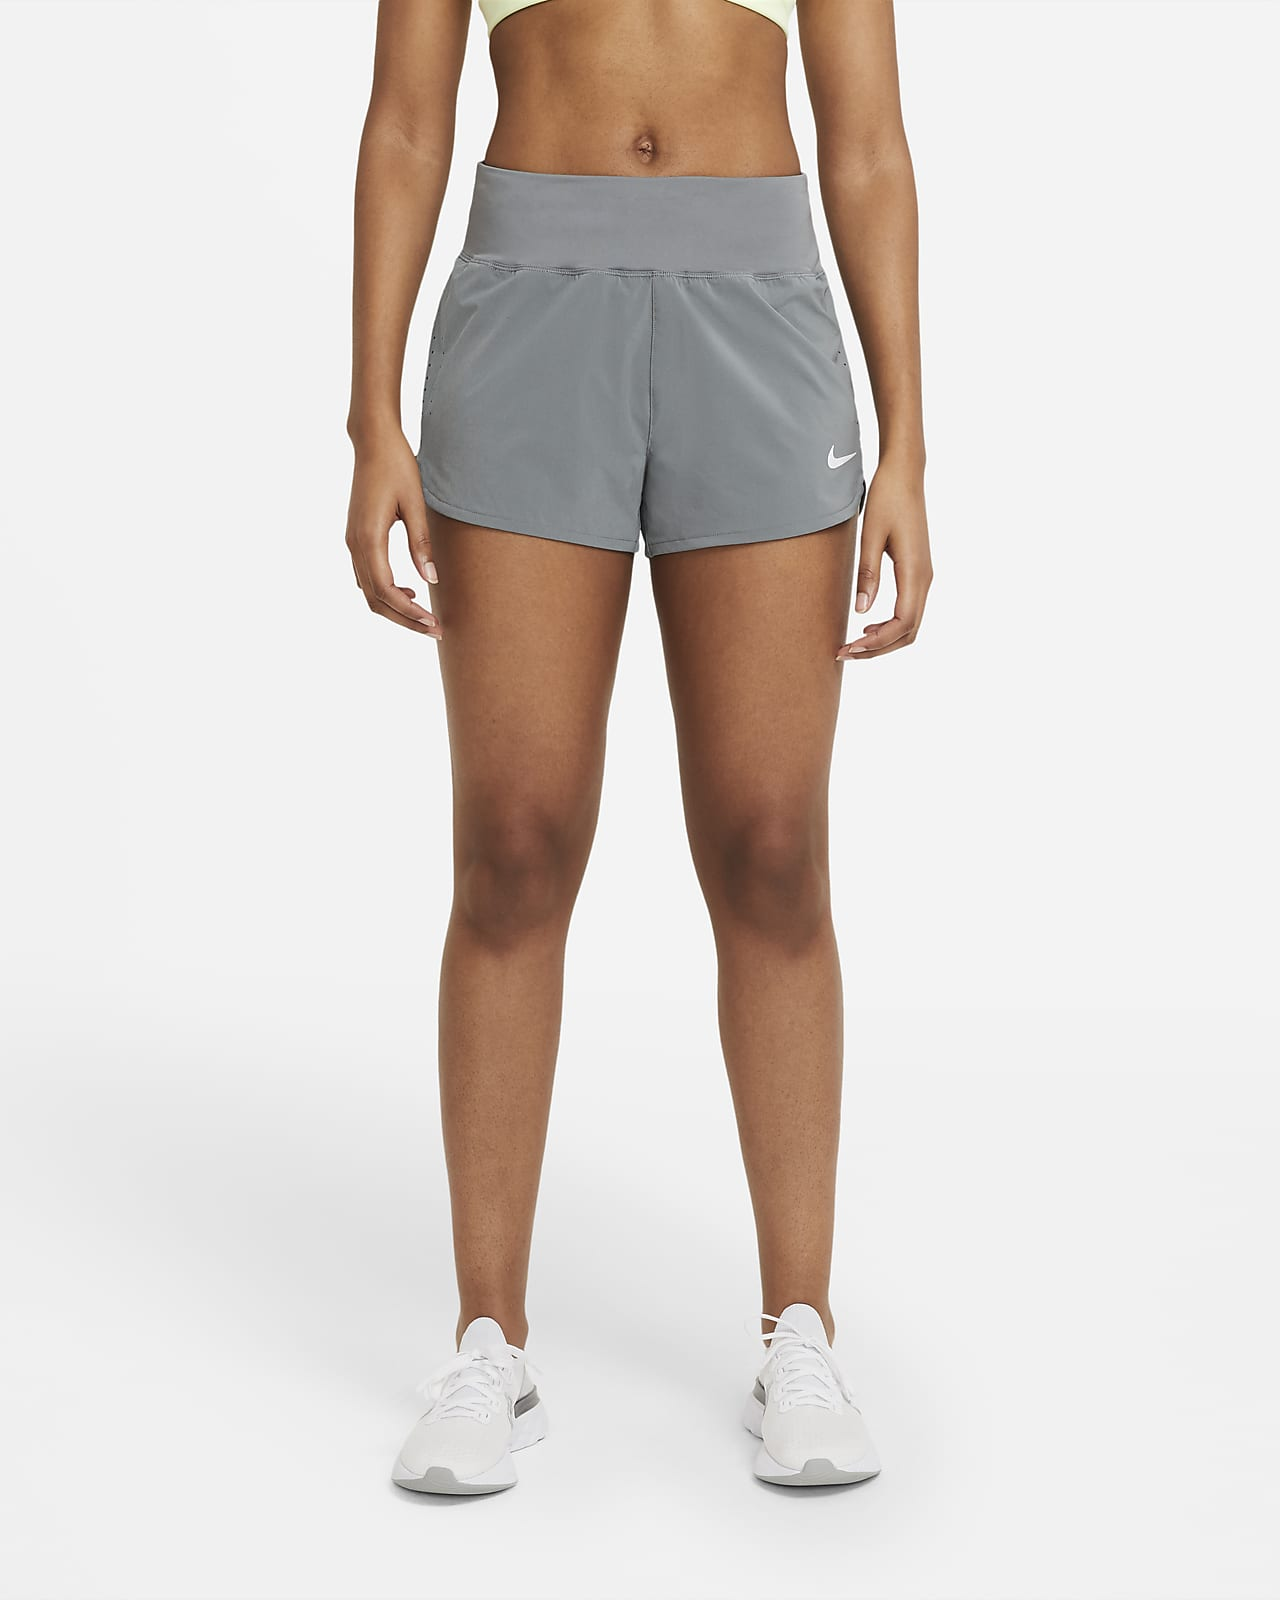 Nike Eclipse Women's Running Shorts